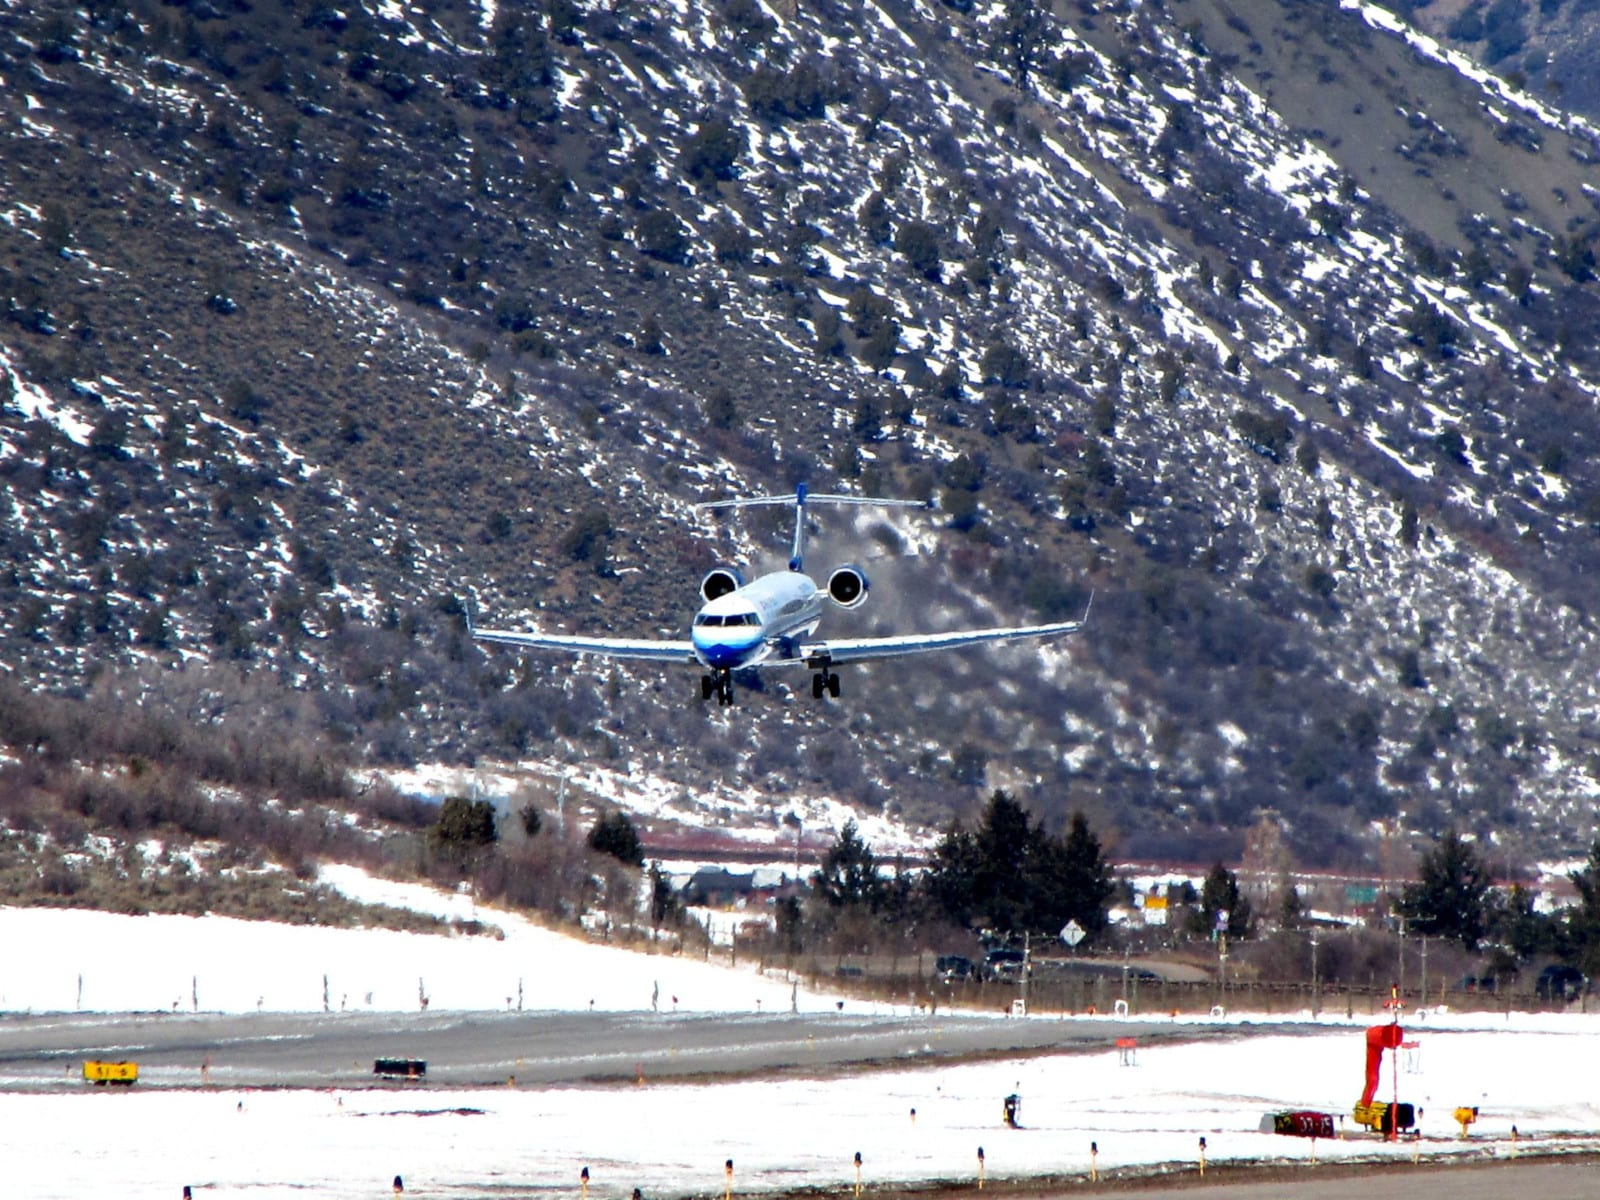 Aspen-Pitkin County Airport SkyWest Airlines Bombardier CRJ-700 Landing